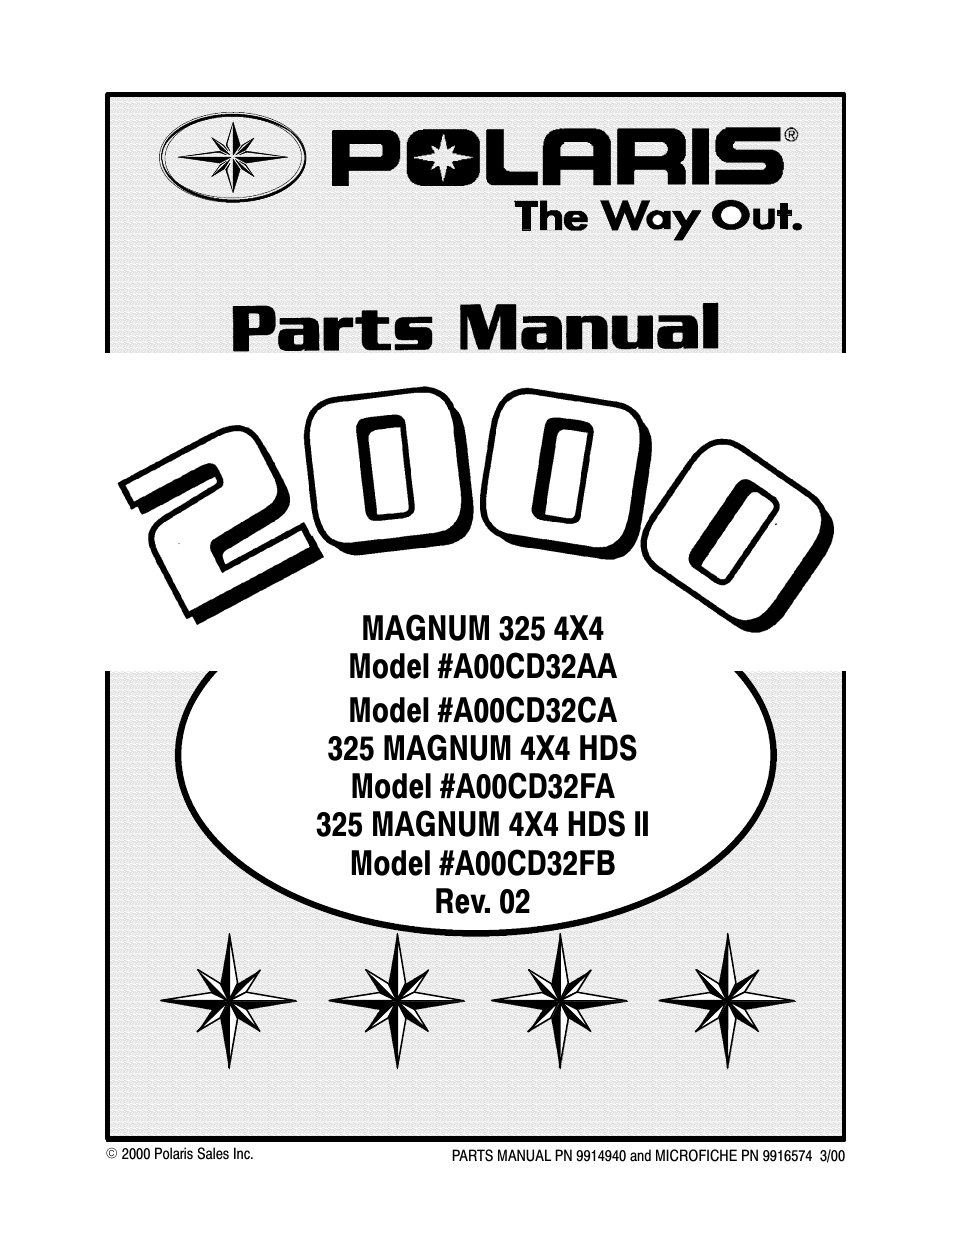 Manual volvo mp8 ebook array polaris manuals download ebook rh polaris manuals download ebook argodata us fandeluxe Images